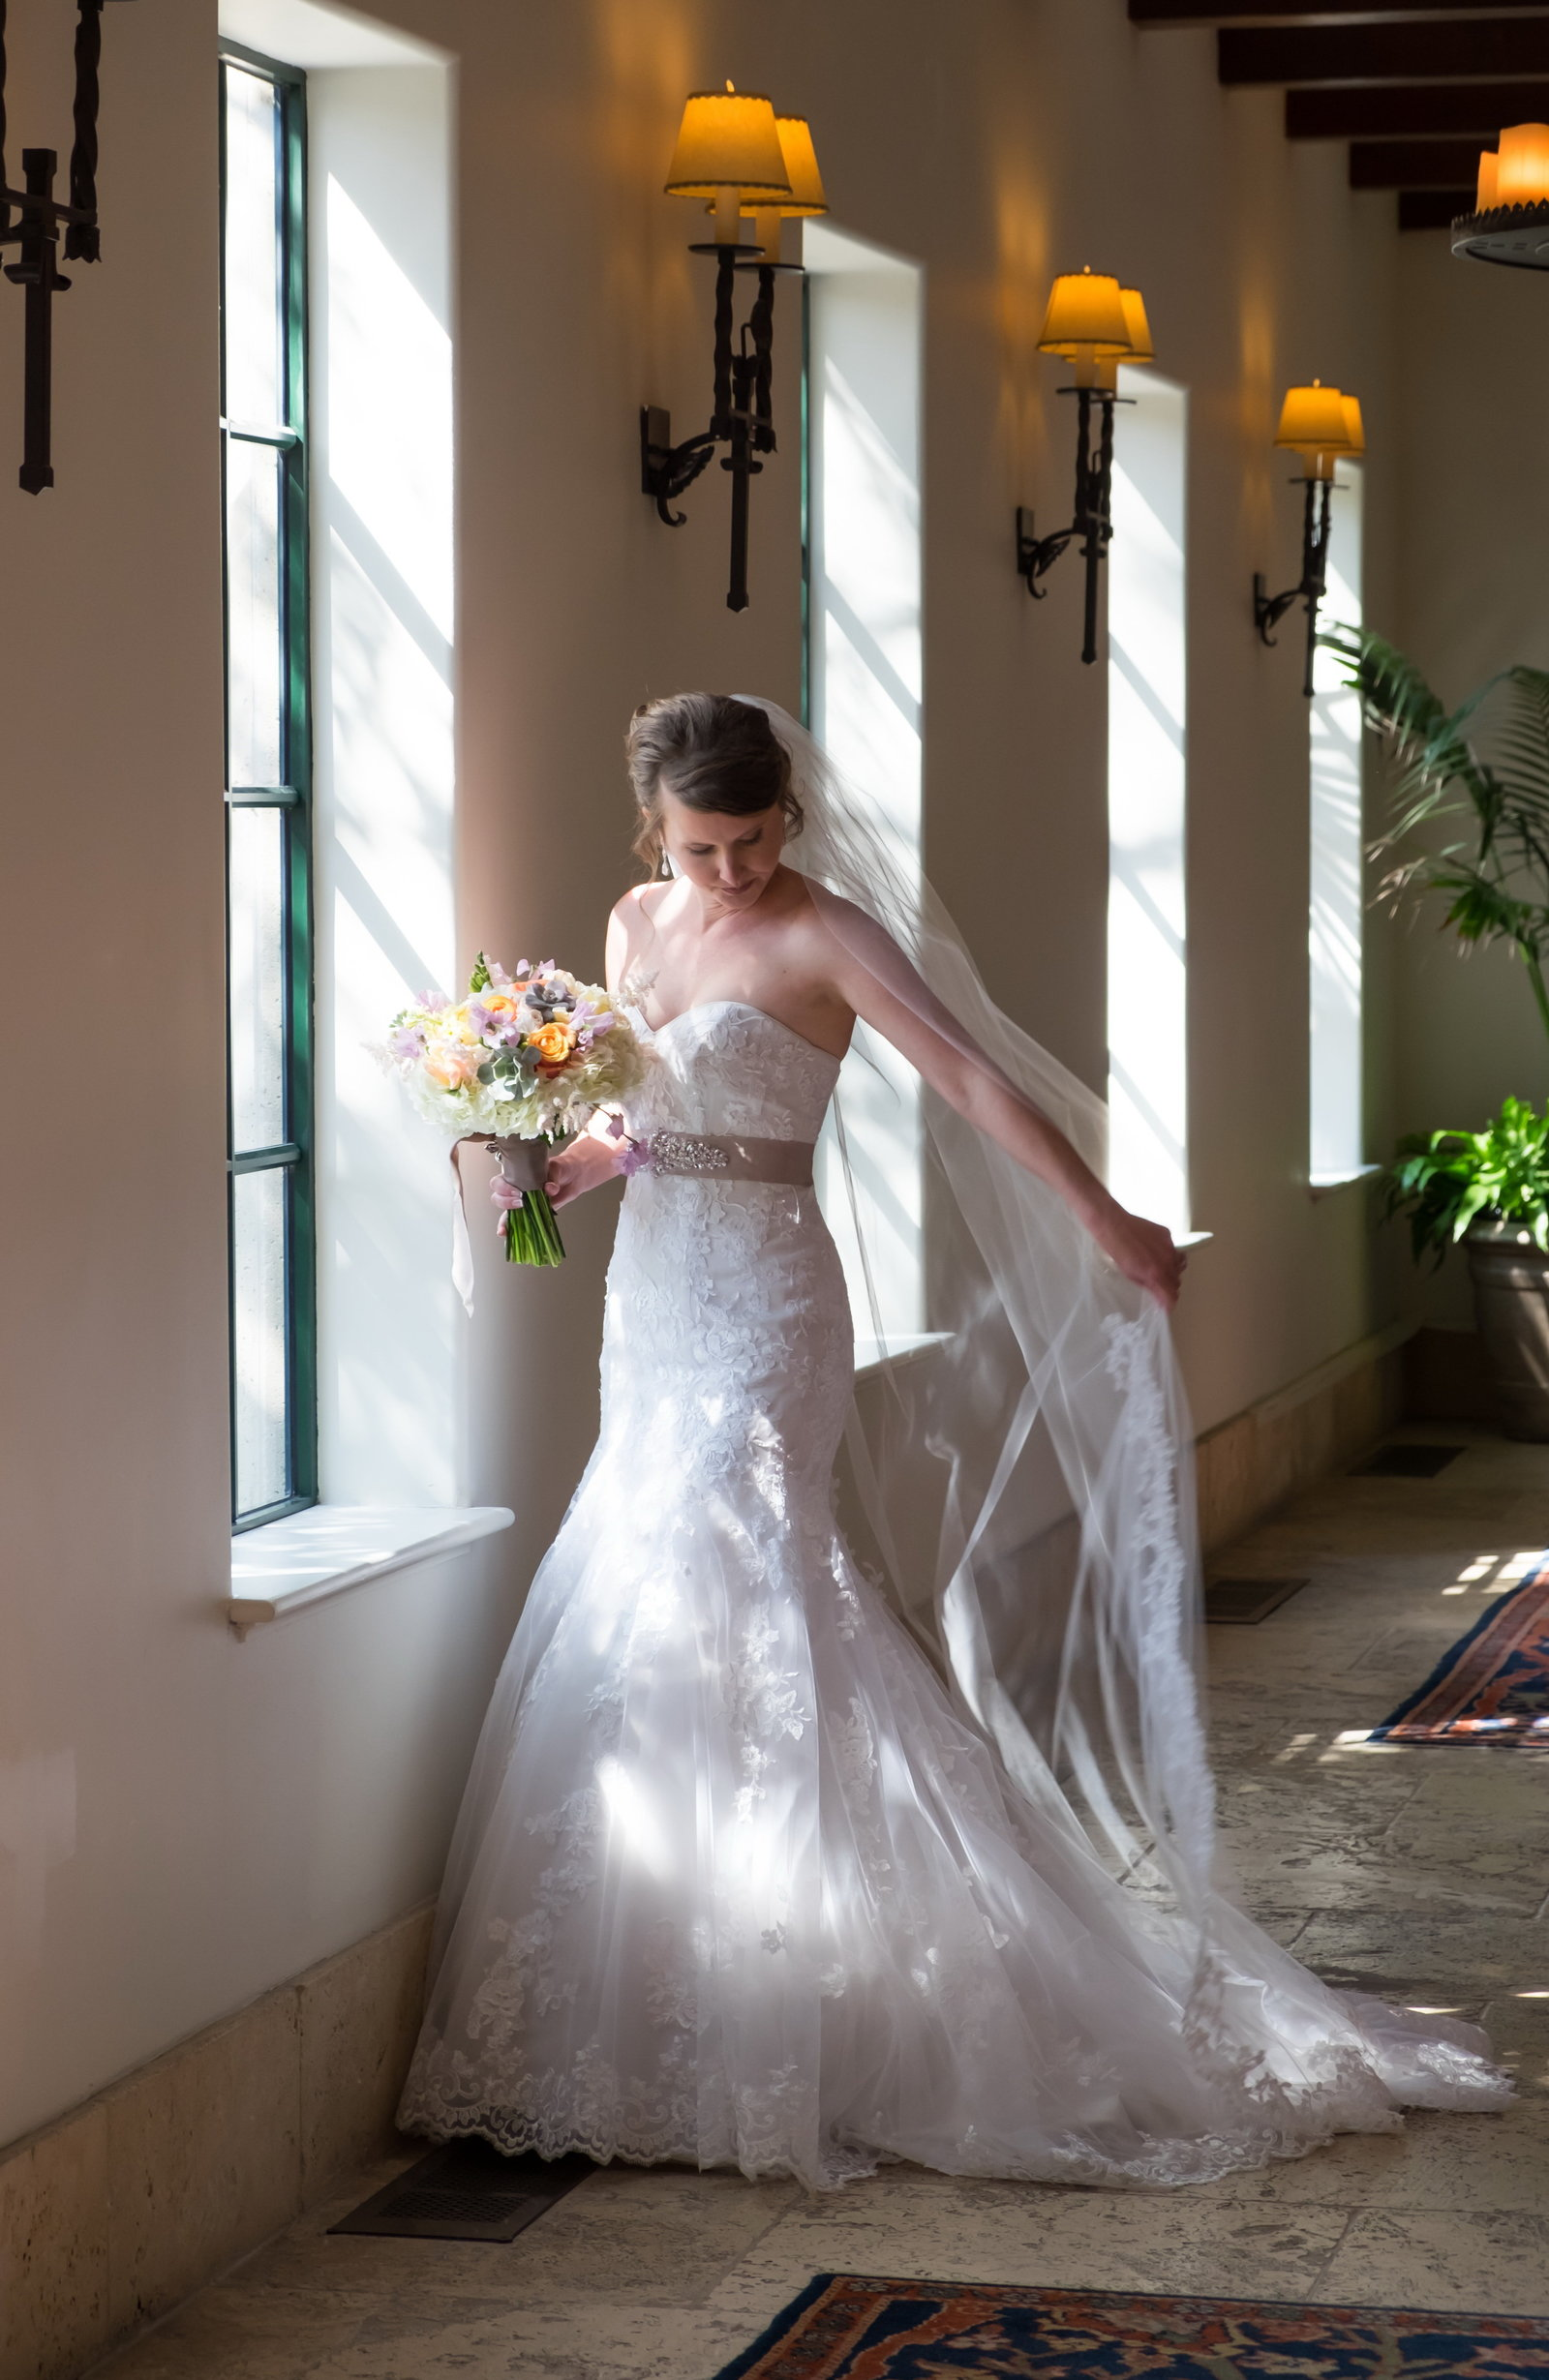 Bobbi Brinkman Photography, Cloisters Wedding